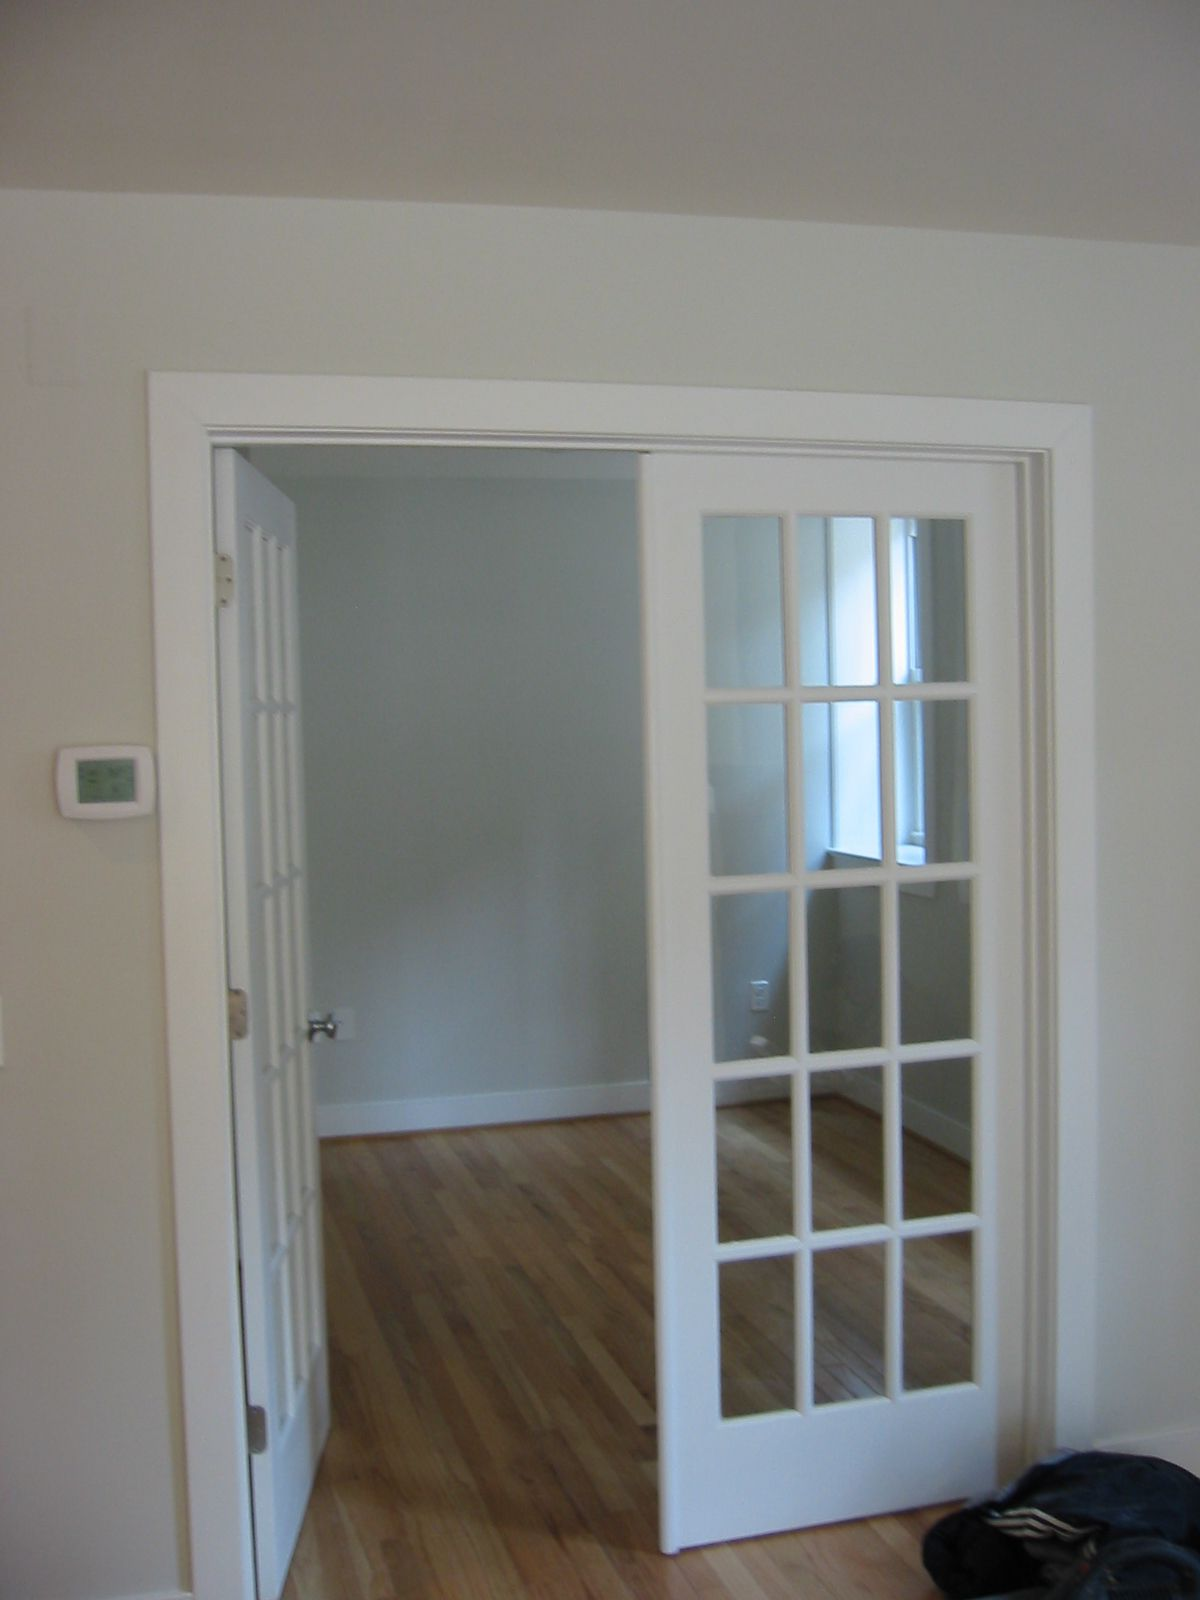 & Double-swing white french doors